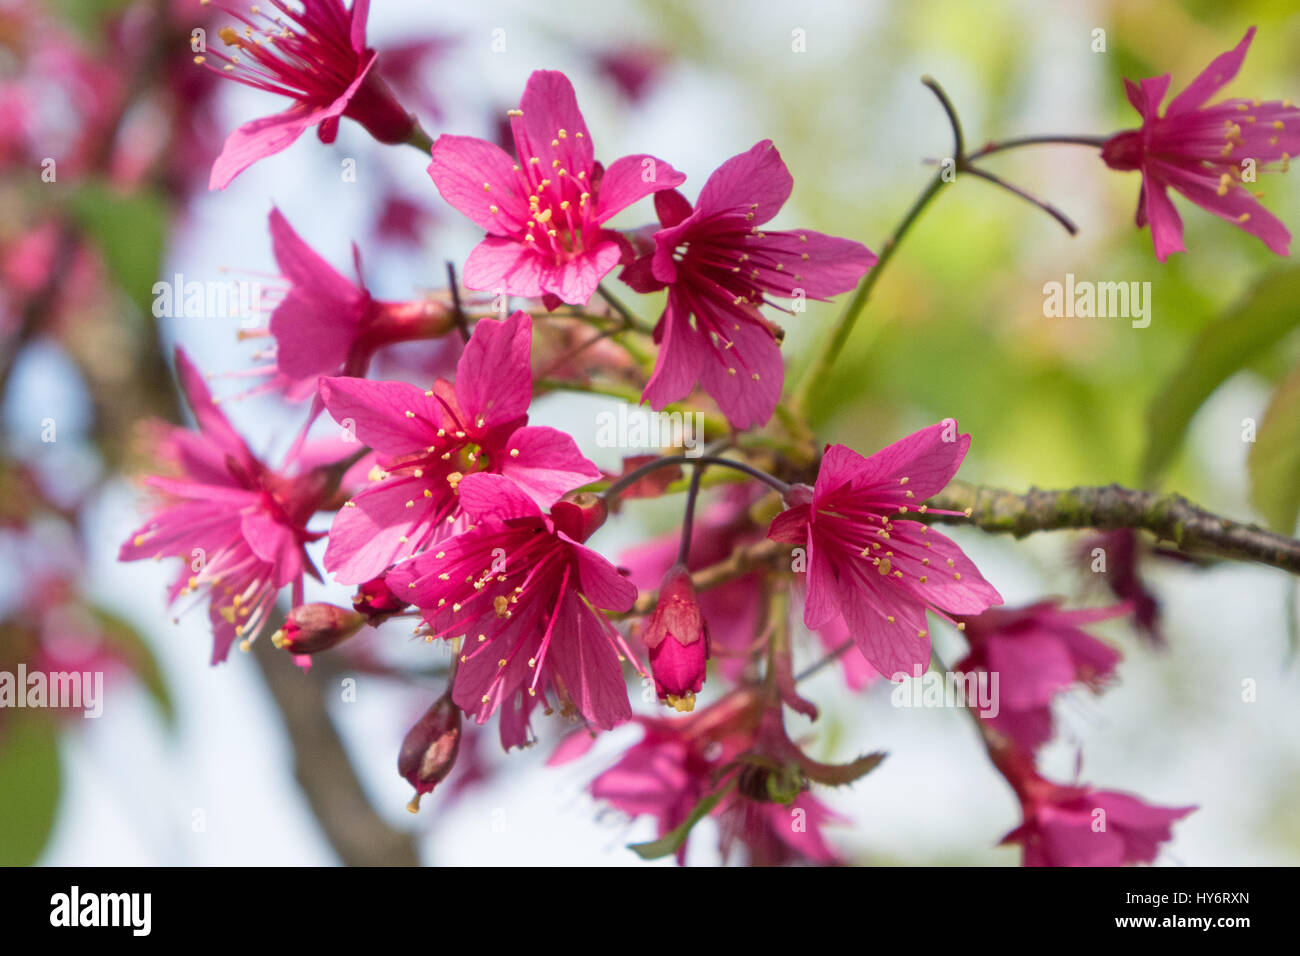 Dark pink spring tree blossom stock photo 137218781 alamy dark pink spring tree blossom mightylinksfo